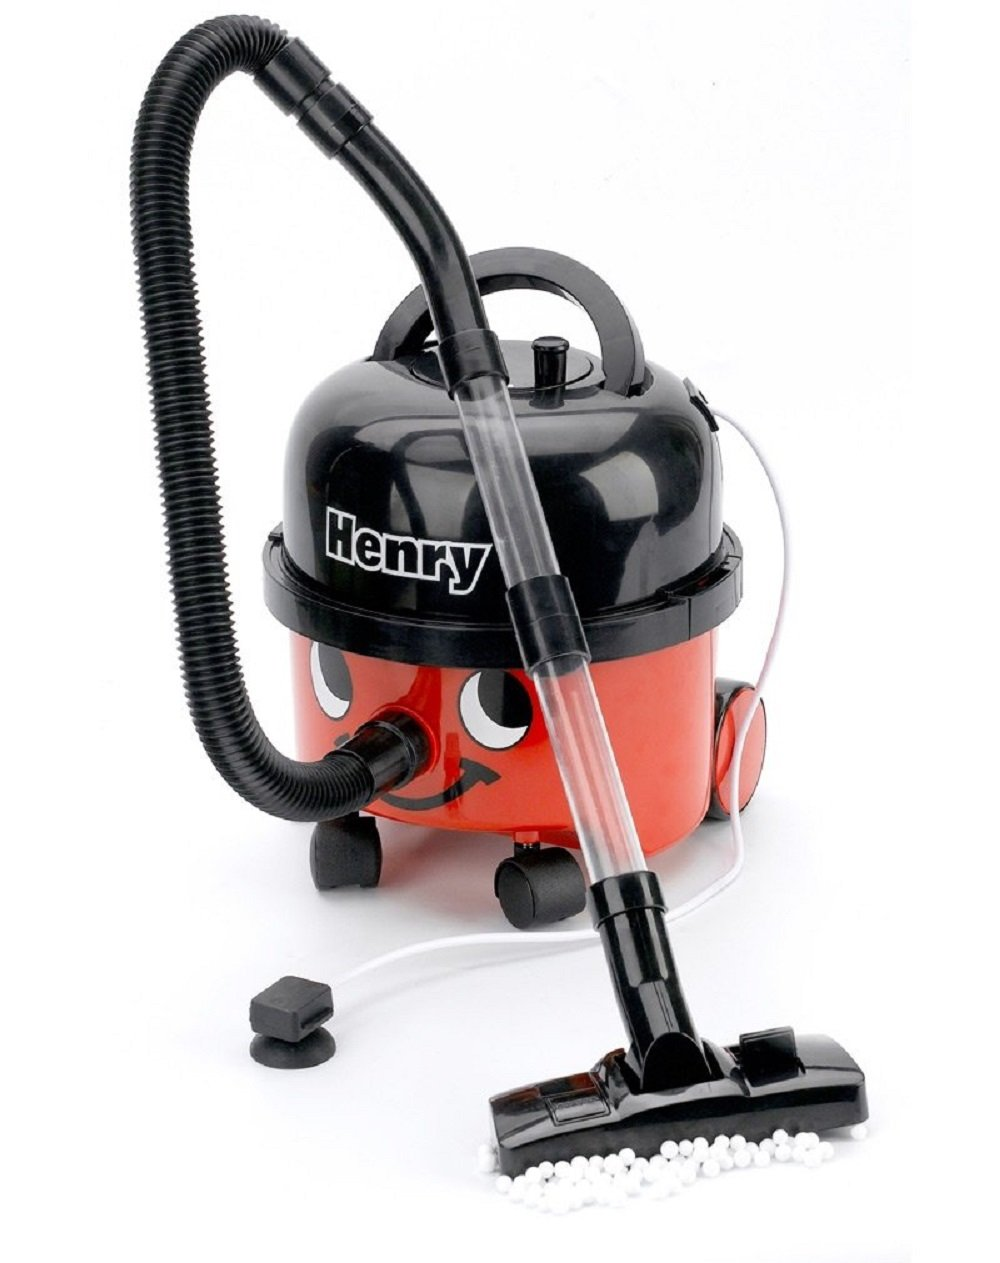 Henry the Hoover Toy